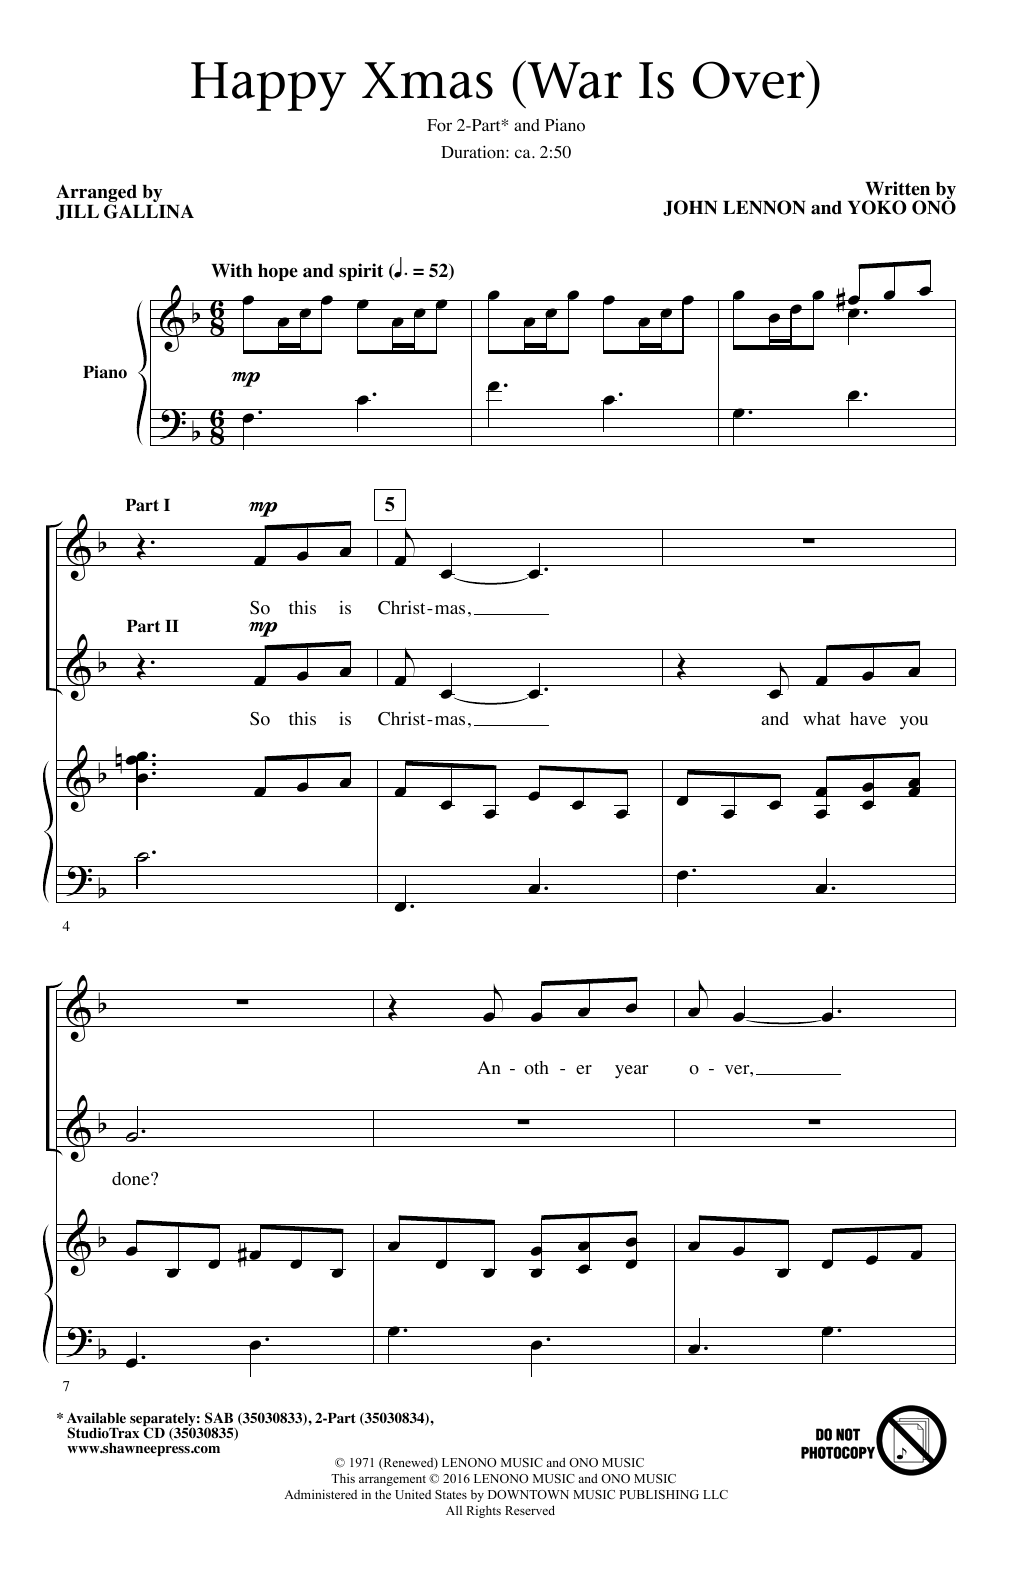 Happy xmas war is over 2 part choir sheet music by by jill happy xmas war is over sheet music hexwebz Images